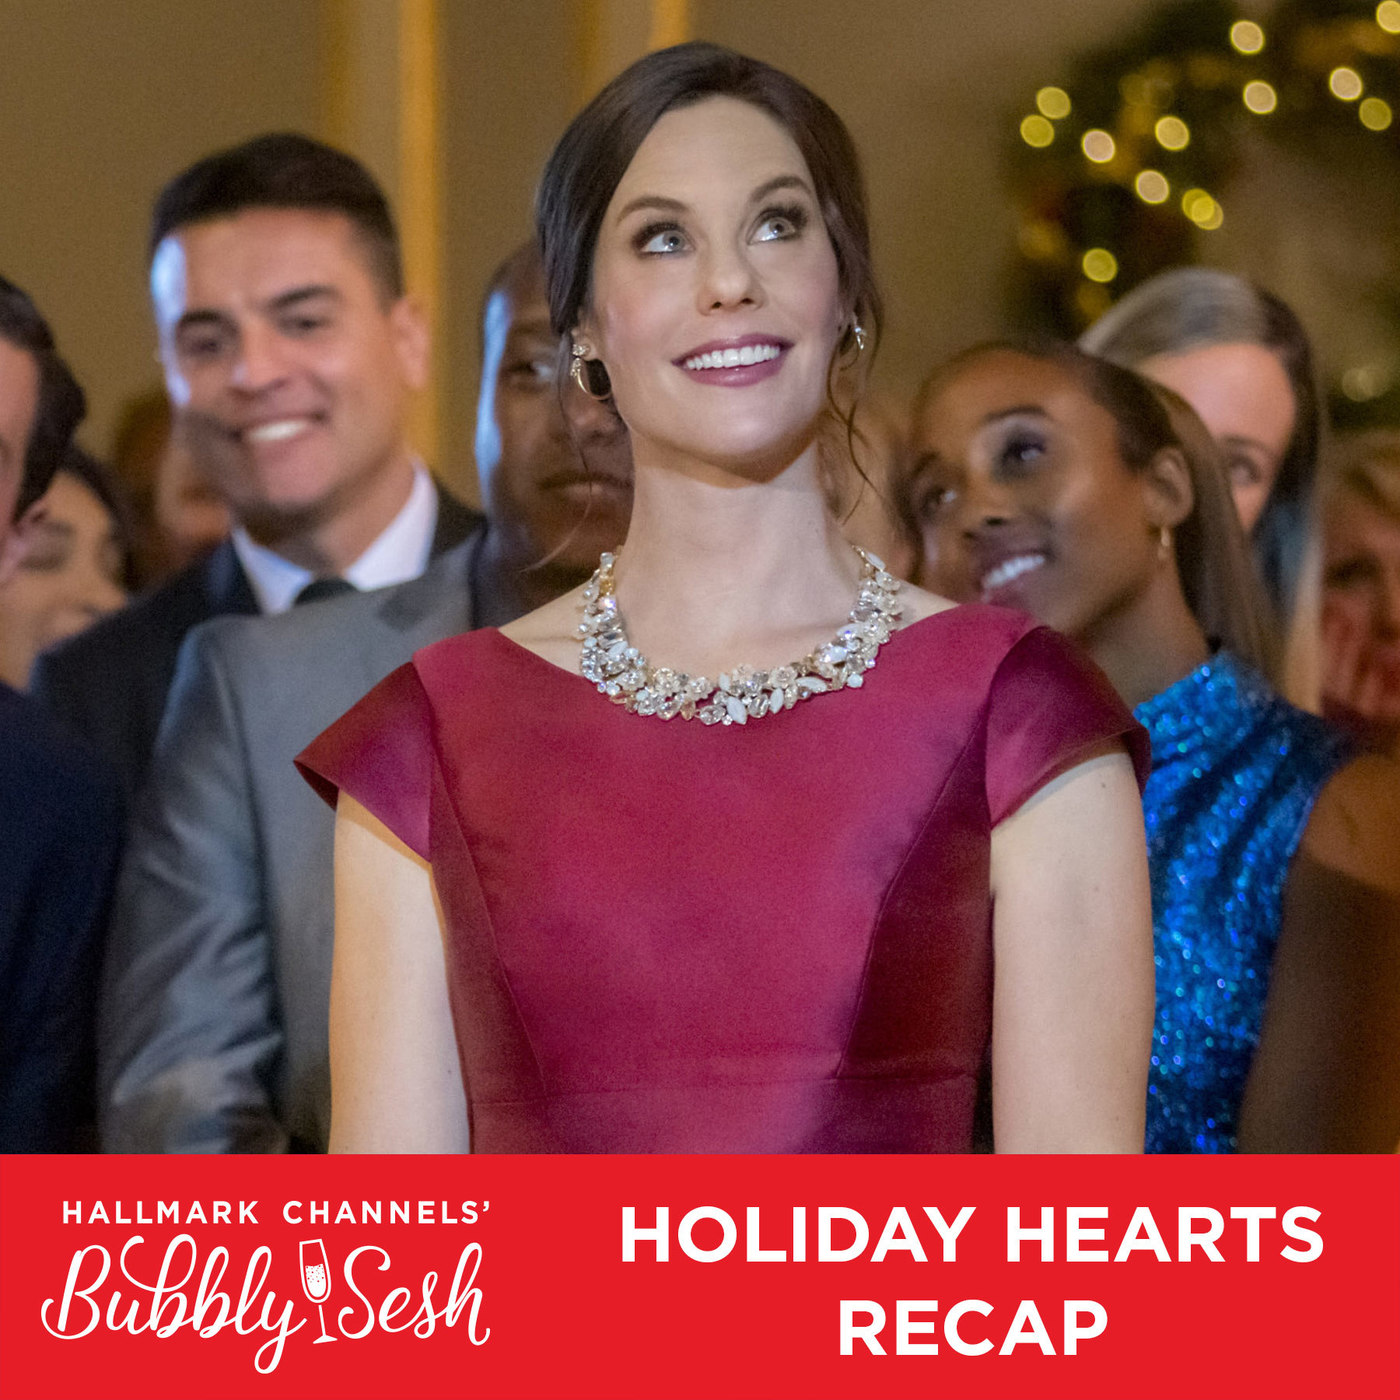 Holiday Hearts Recap